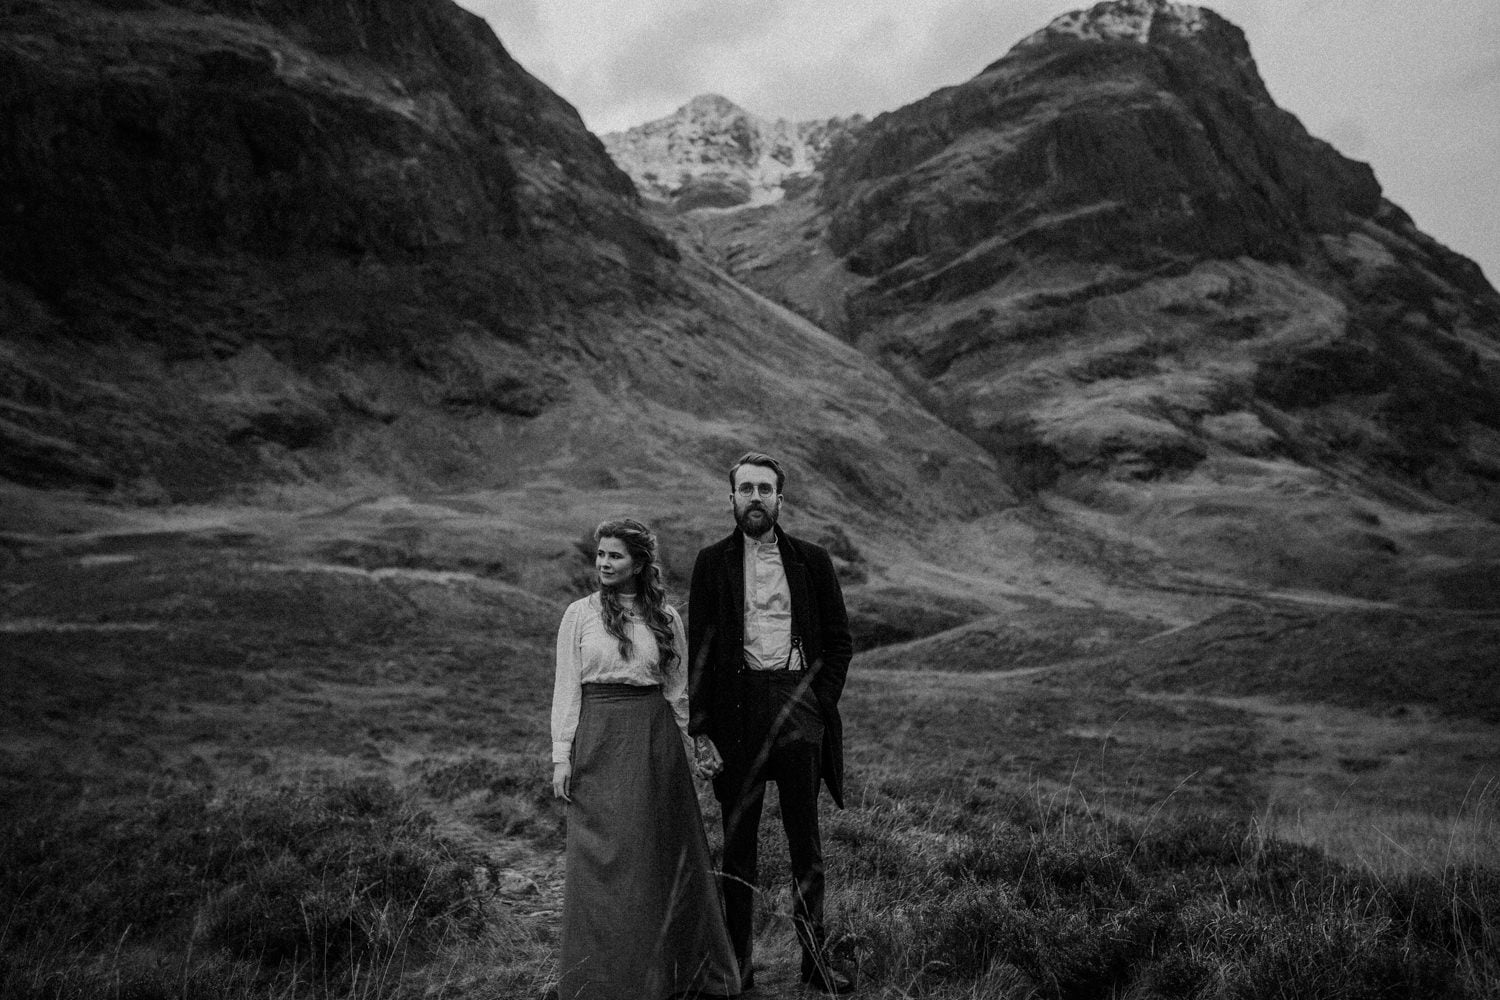 Glencoe, Three Sisters, Glecoe elopement, Scottish Highlands elopement, Scottish Highlands, Glencoe photography, Glencoe wedding, Glencoe wedding photographer, Glencoe wedding photos, Glencoe elopement, Bernadeta Kupiec, Darcy Clothing